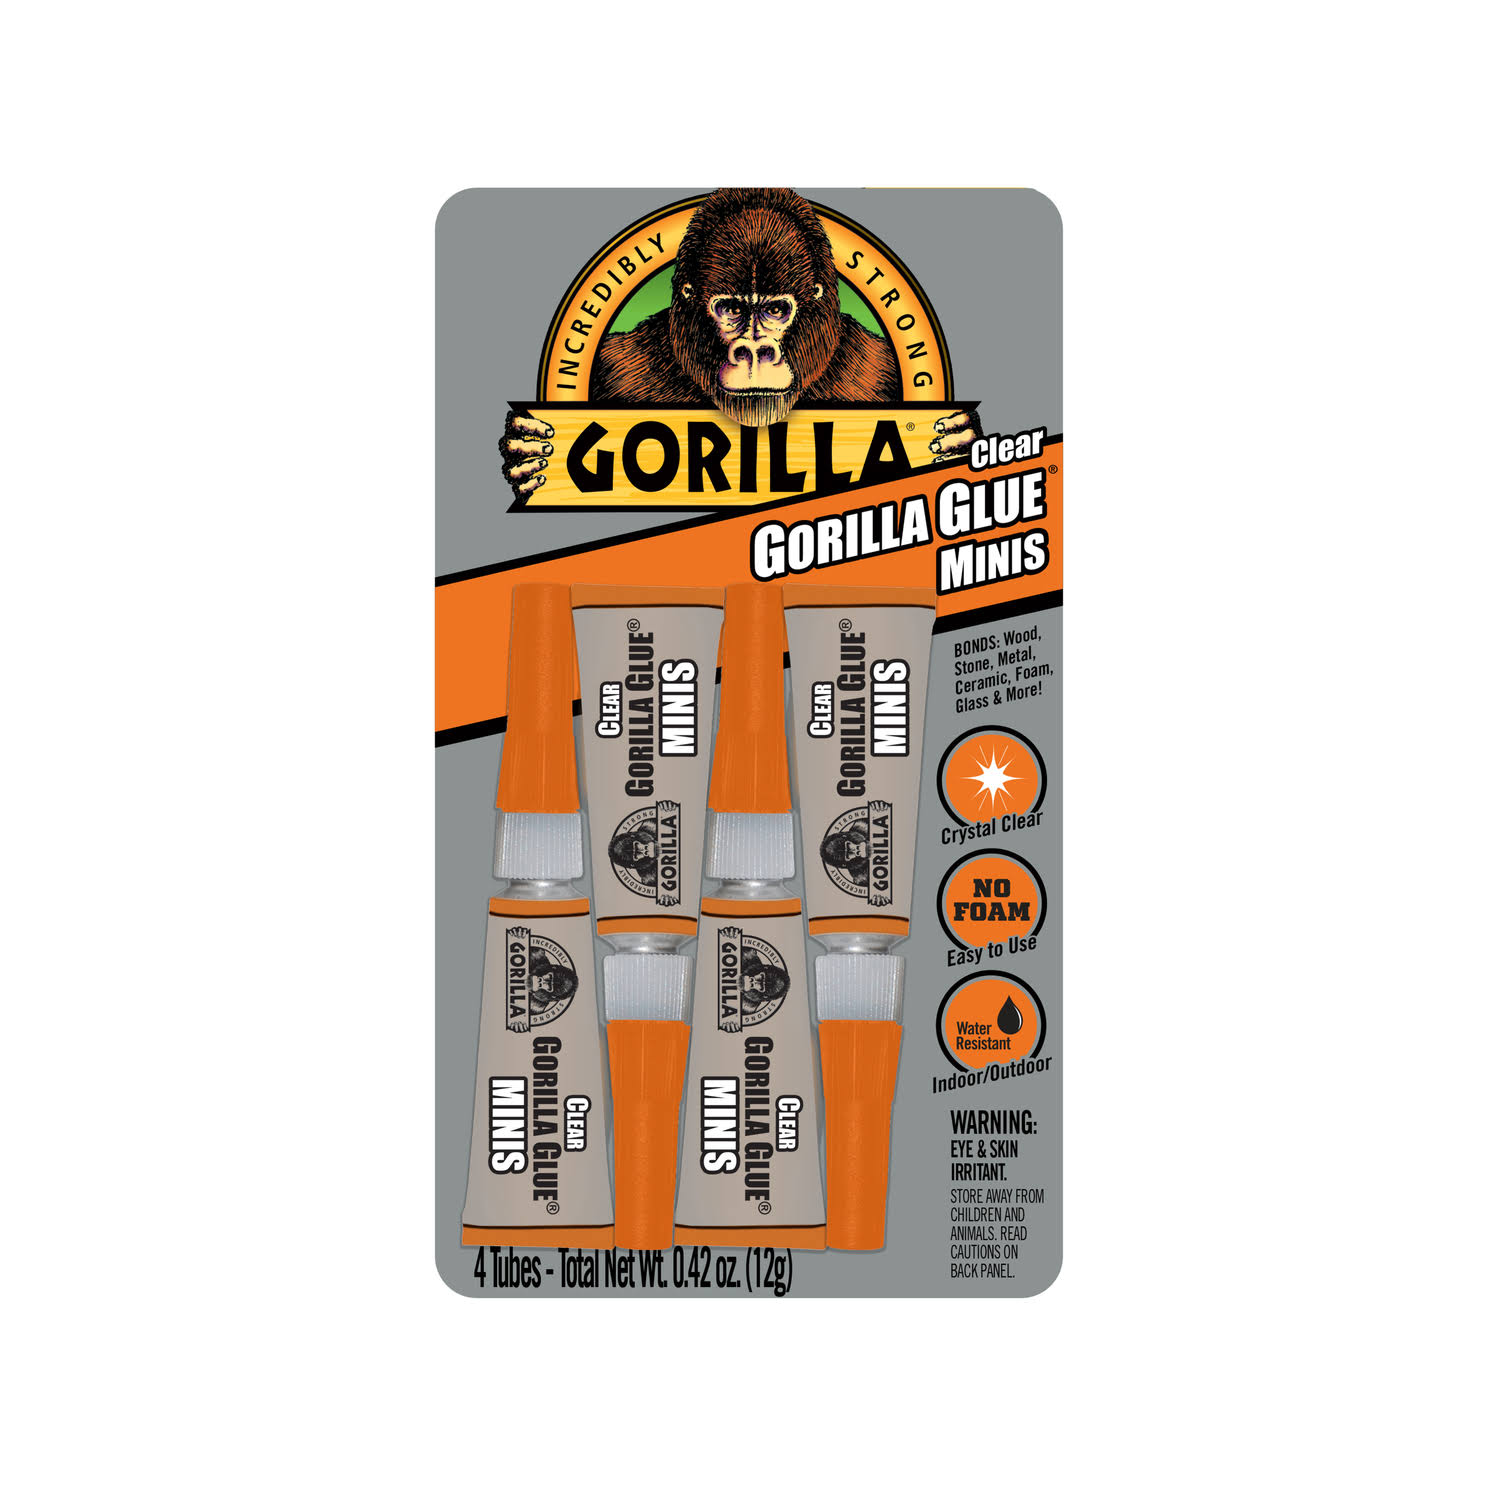 Gorilla High Strength Glue All Purpose Adhesive - Clear, x4